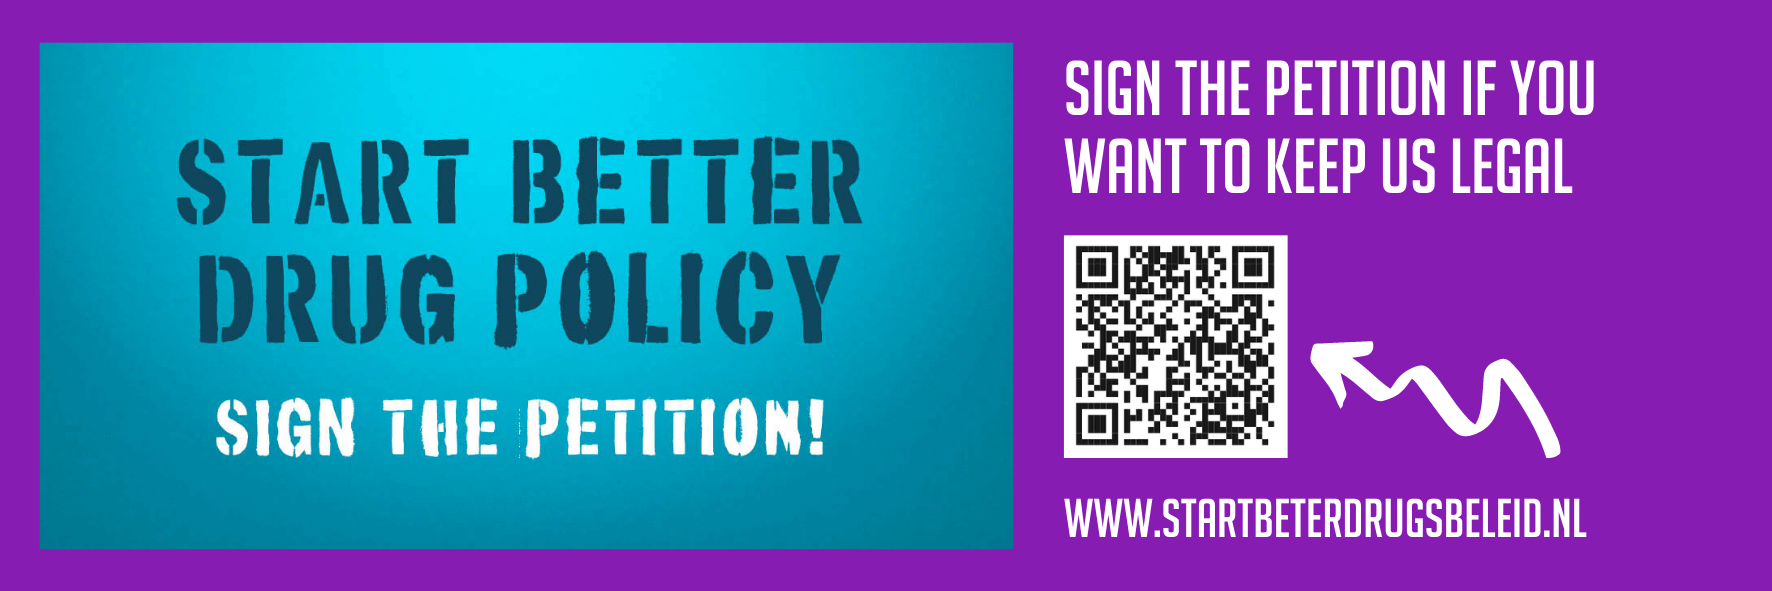 Banner - Sign the petition to fight the ban